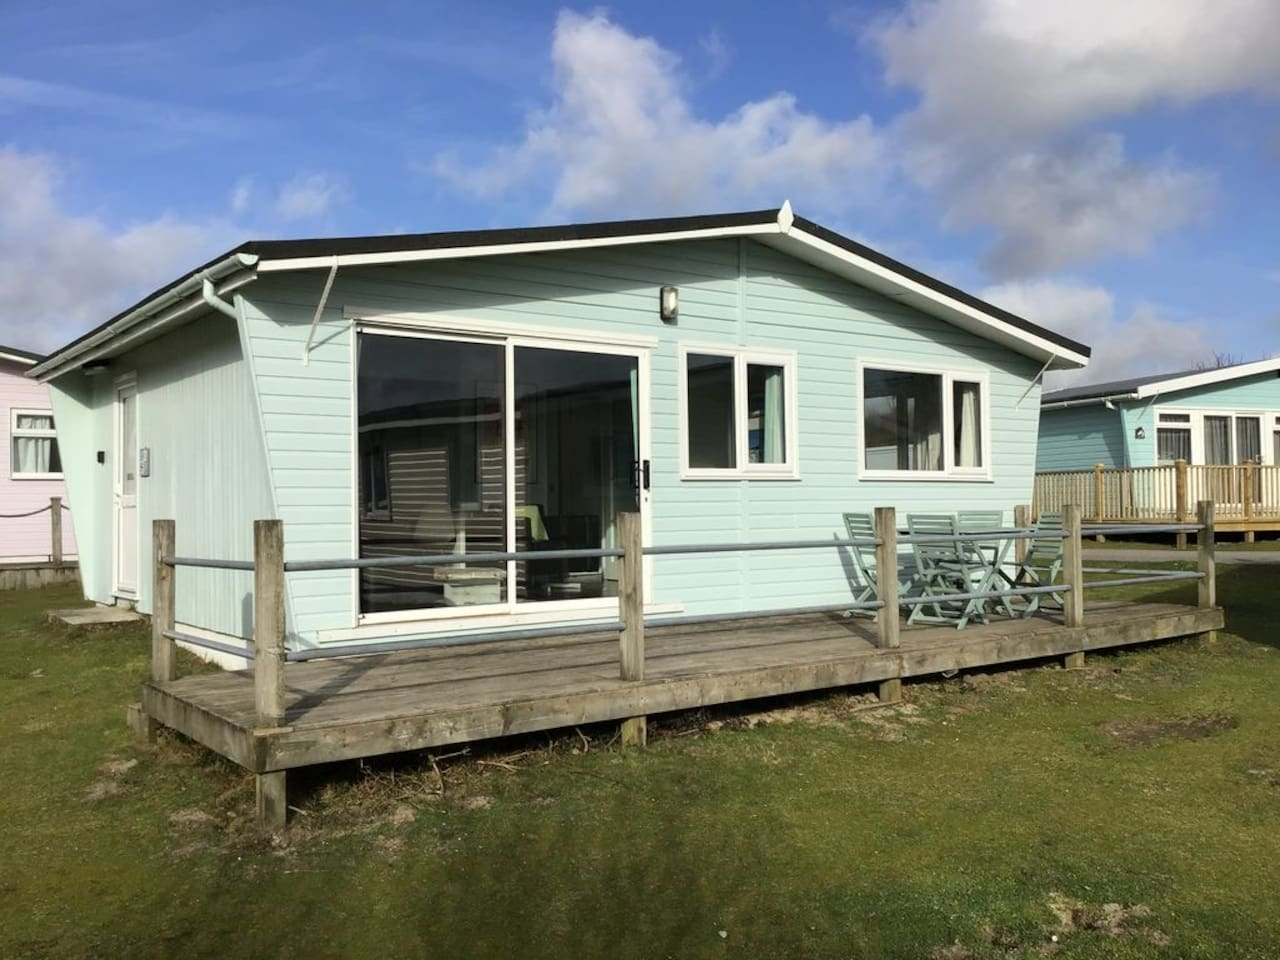 Surfside is a stylish beach chalet by the dunes at Gwithian Sands and sleeps up to 4 adults and 2 children